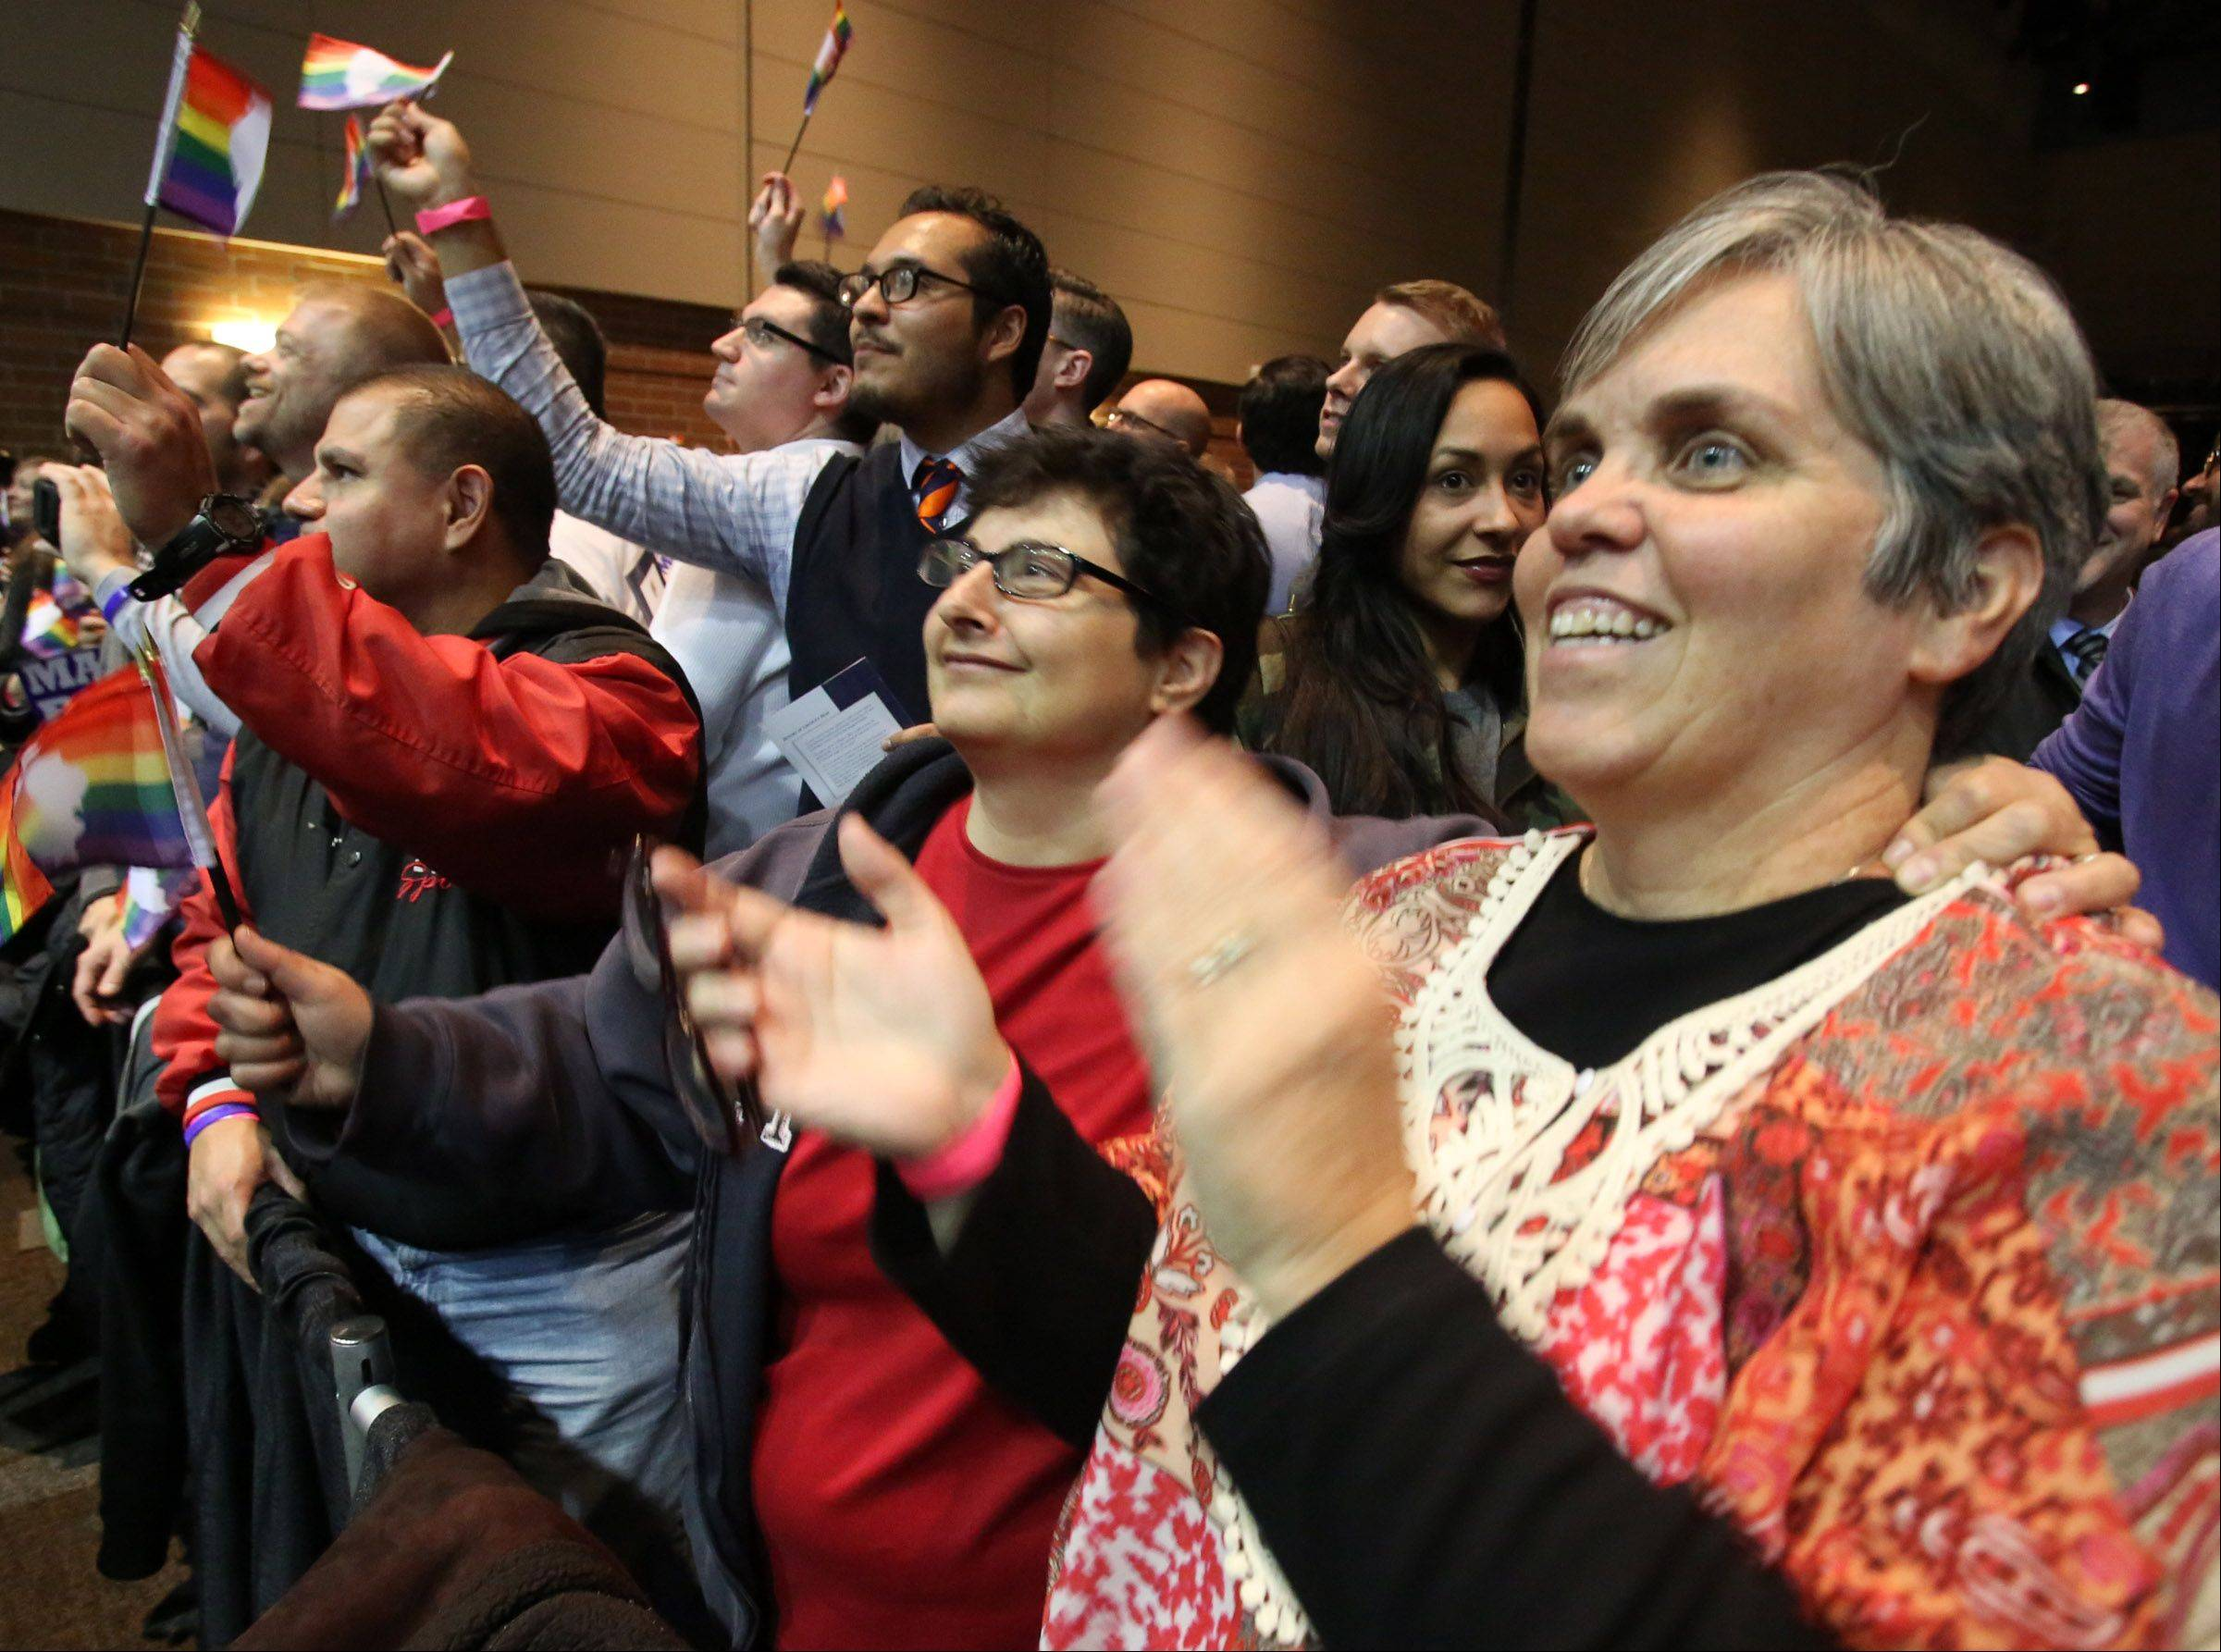 $PHOTOCREDIT_ON$George LeClaire/gleclaire@dailyherald.com$PHOTOCREDIT_OFF$Donna Corpolongo, left, and Geri Winters, both of Lombard, celebrate as Gov. Pat Quinn signs the Religious Freedom and Marriage Fairness Act.